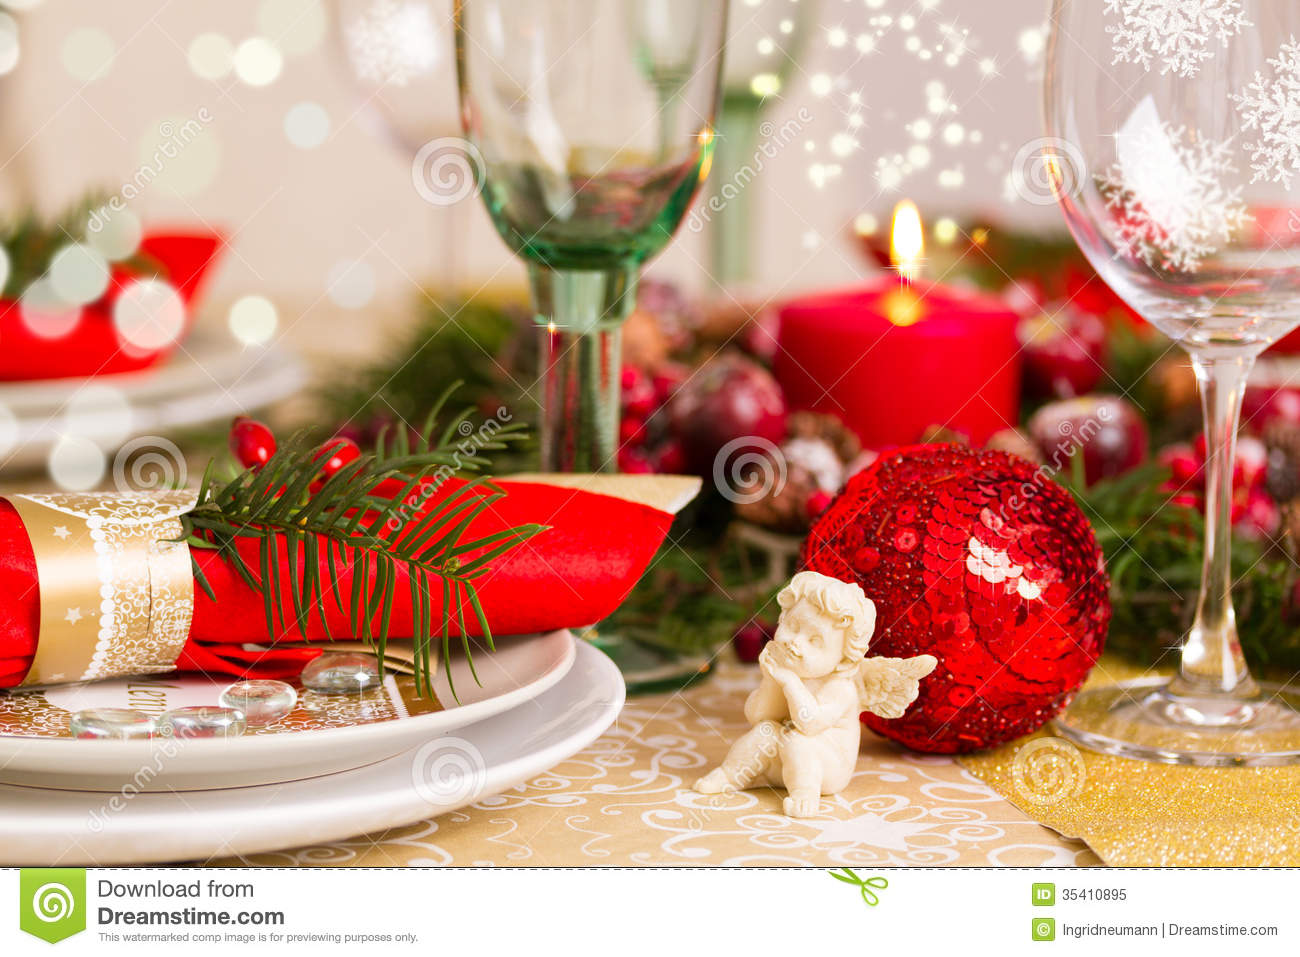 Christmas Table Setting With Holiday Decorations Royalty